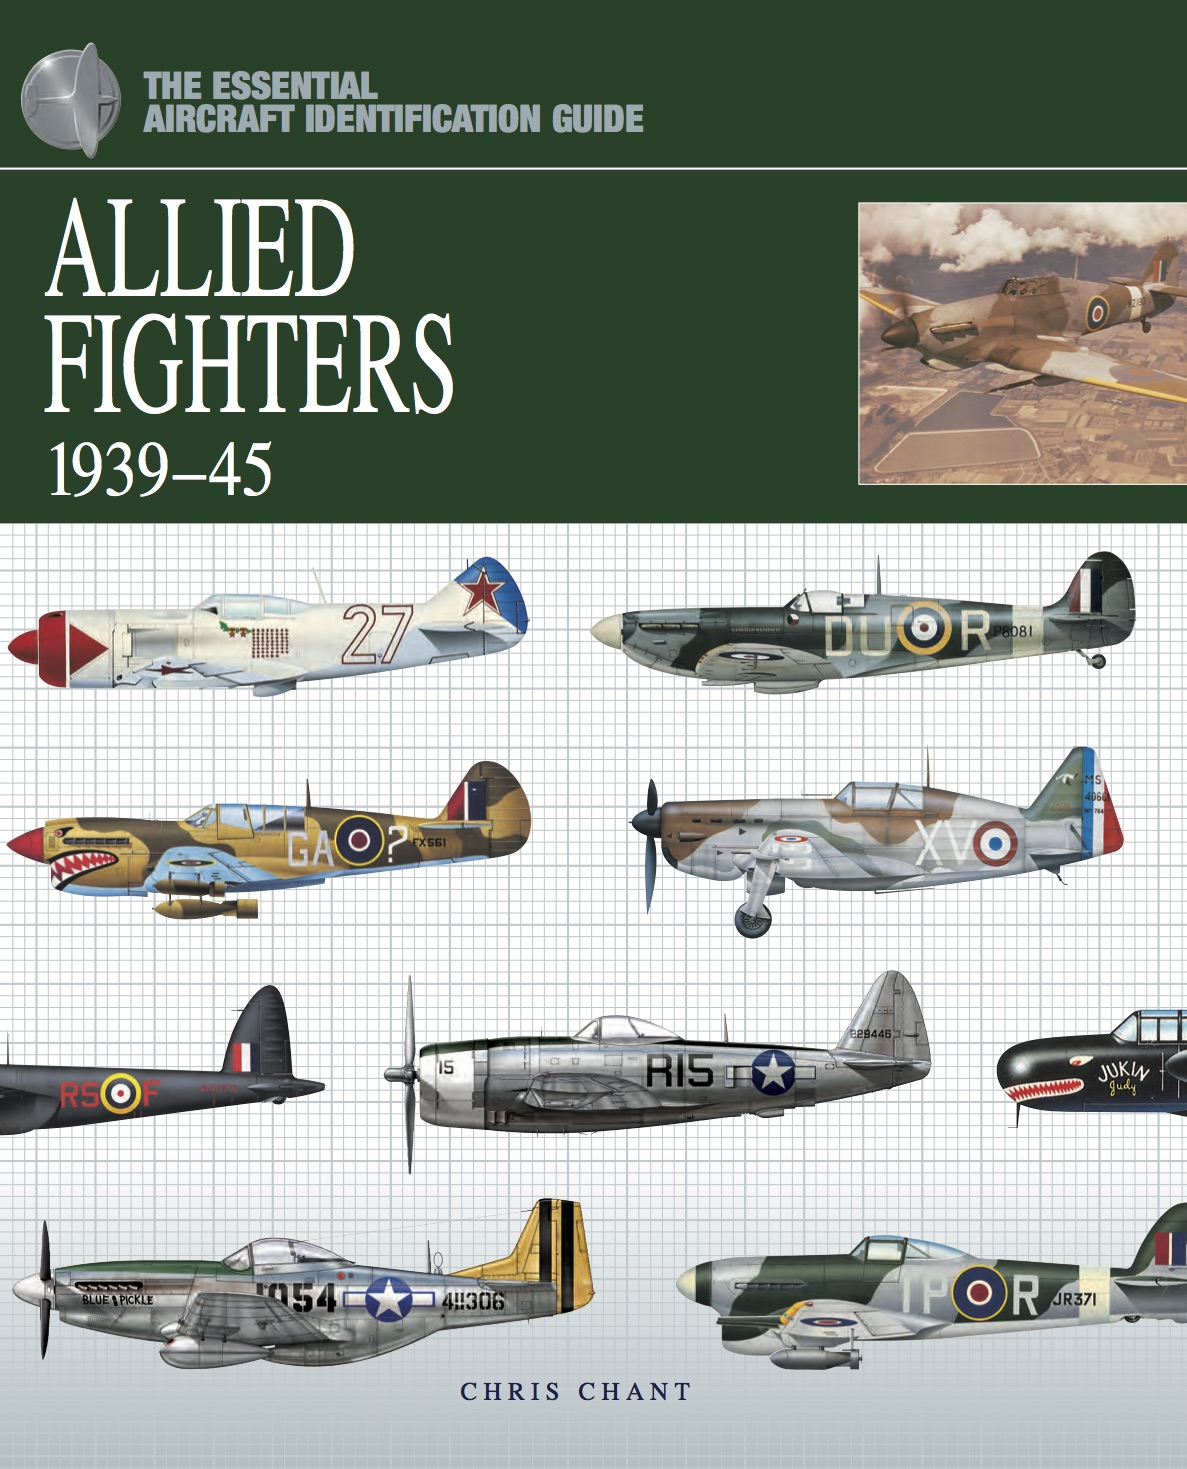 The Essential Aircraft Identification Guide: Allied Fighters 1939-45